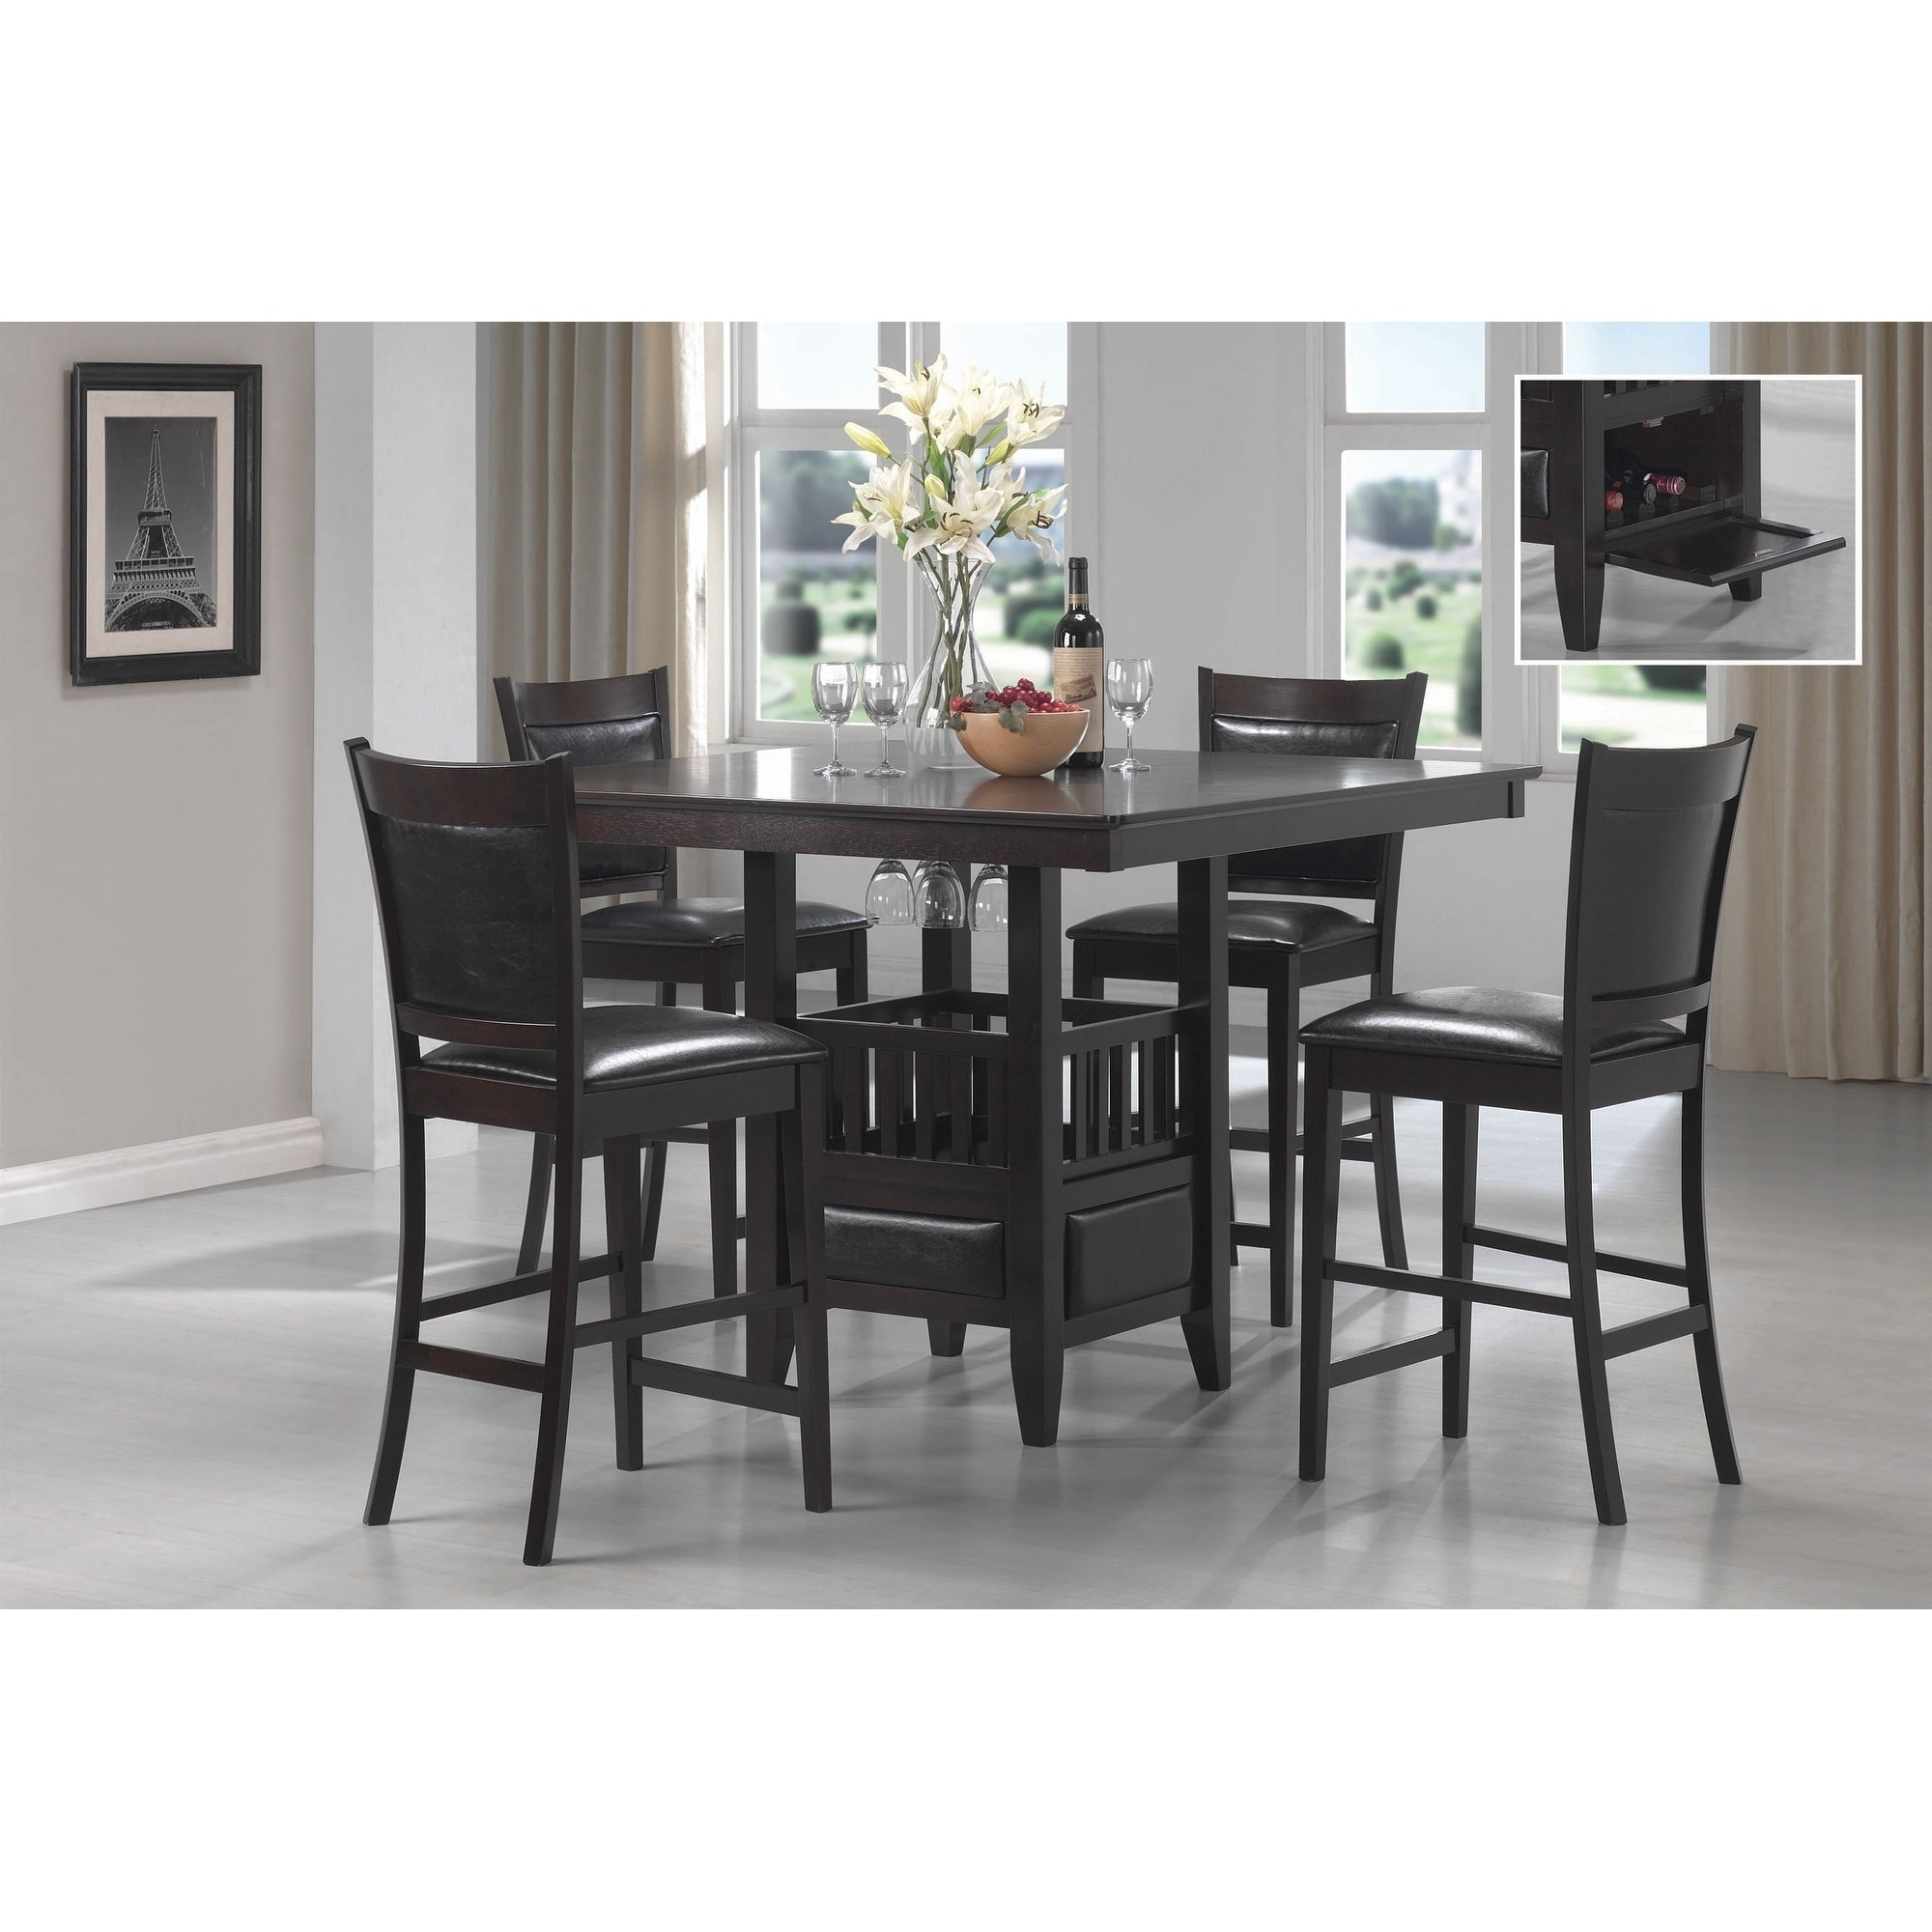 Shop Finley Black 5 Piece Counter Height Dining Set On Sale Overstock 27348598